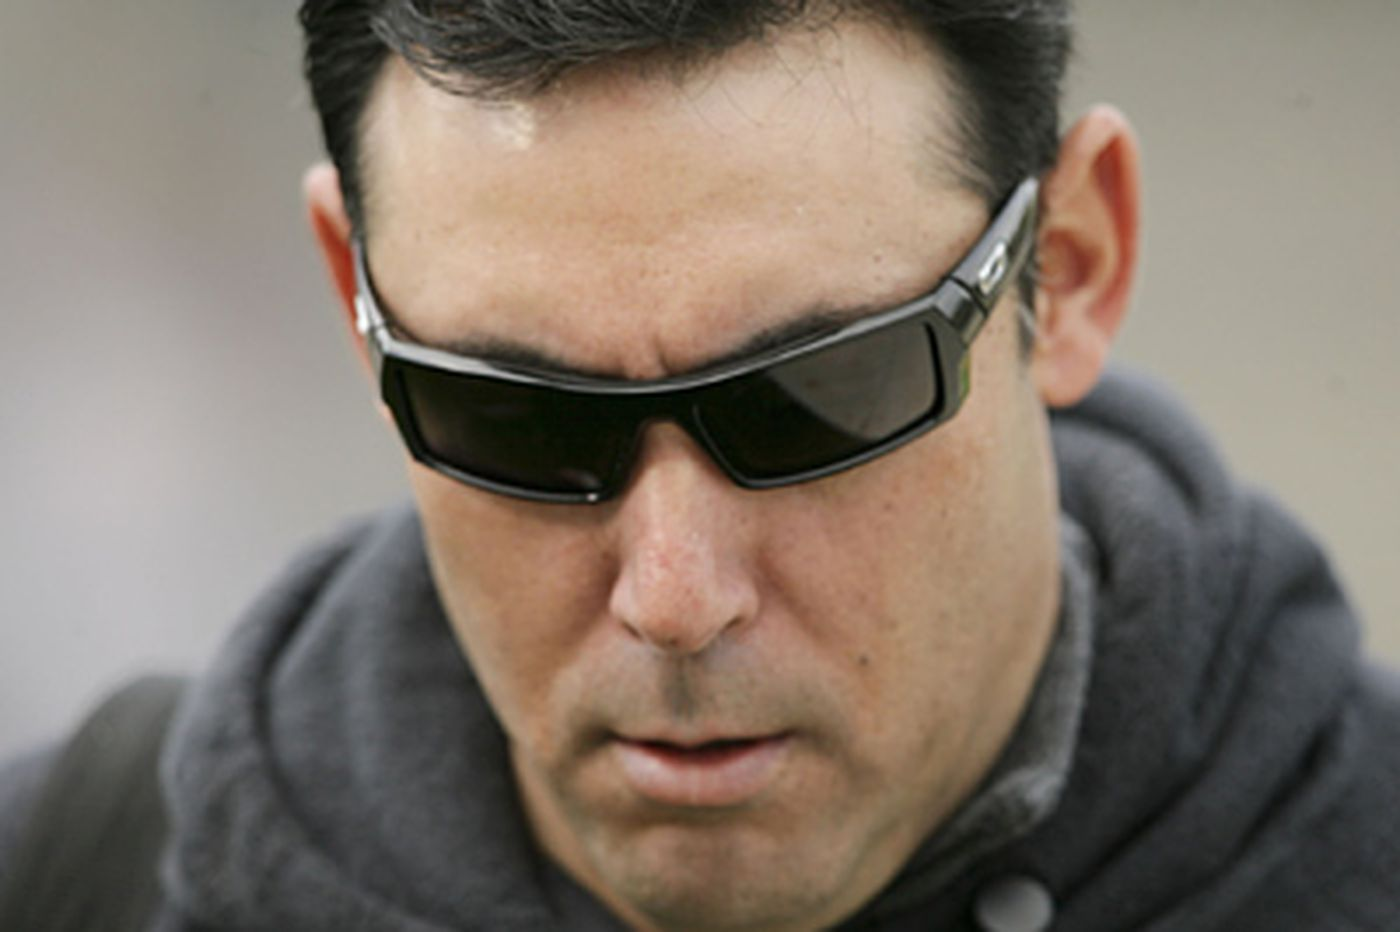 Inside Baseball: Lessons for Phillies' Amaro: Don't be timid